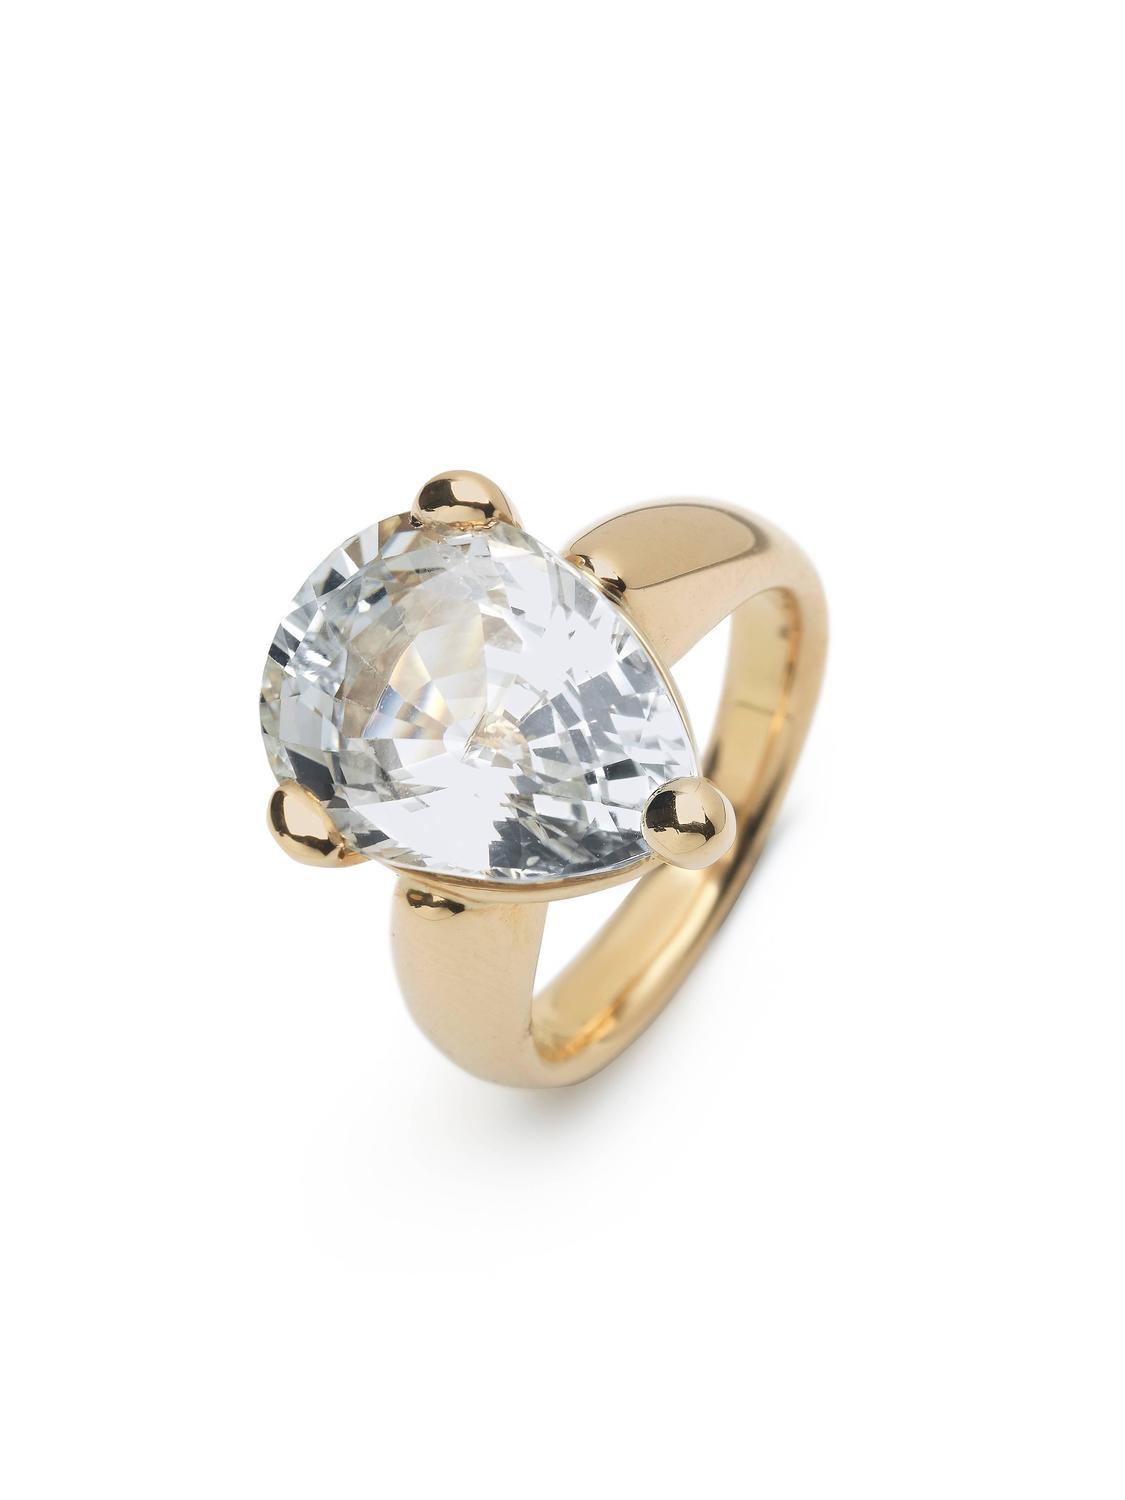 Morganite Gold Three Stone Ring For Sale at 1stdibs